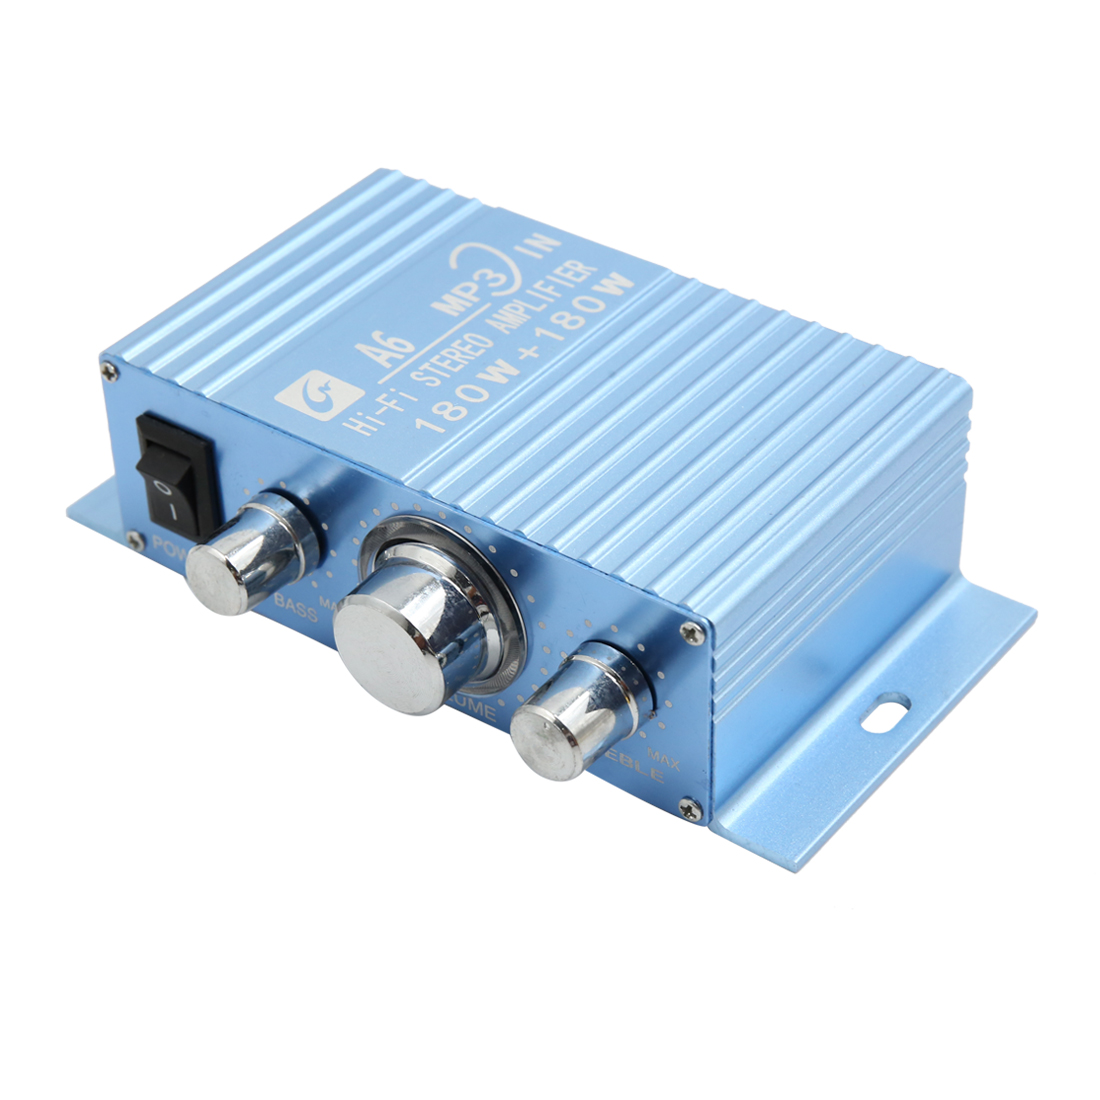 DC 12V 2A Hi-Fi FM Radio Audio Stereo Power Amplifier for Car Motorcycle Boat